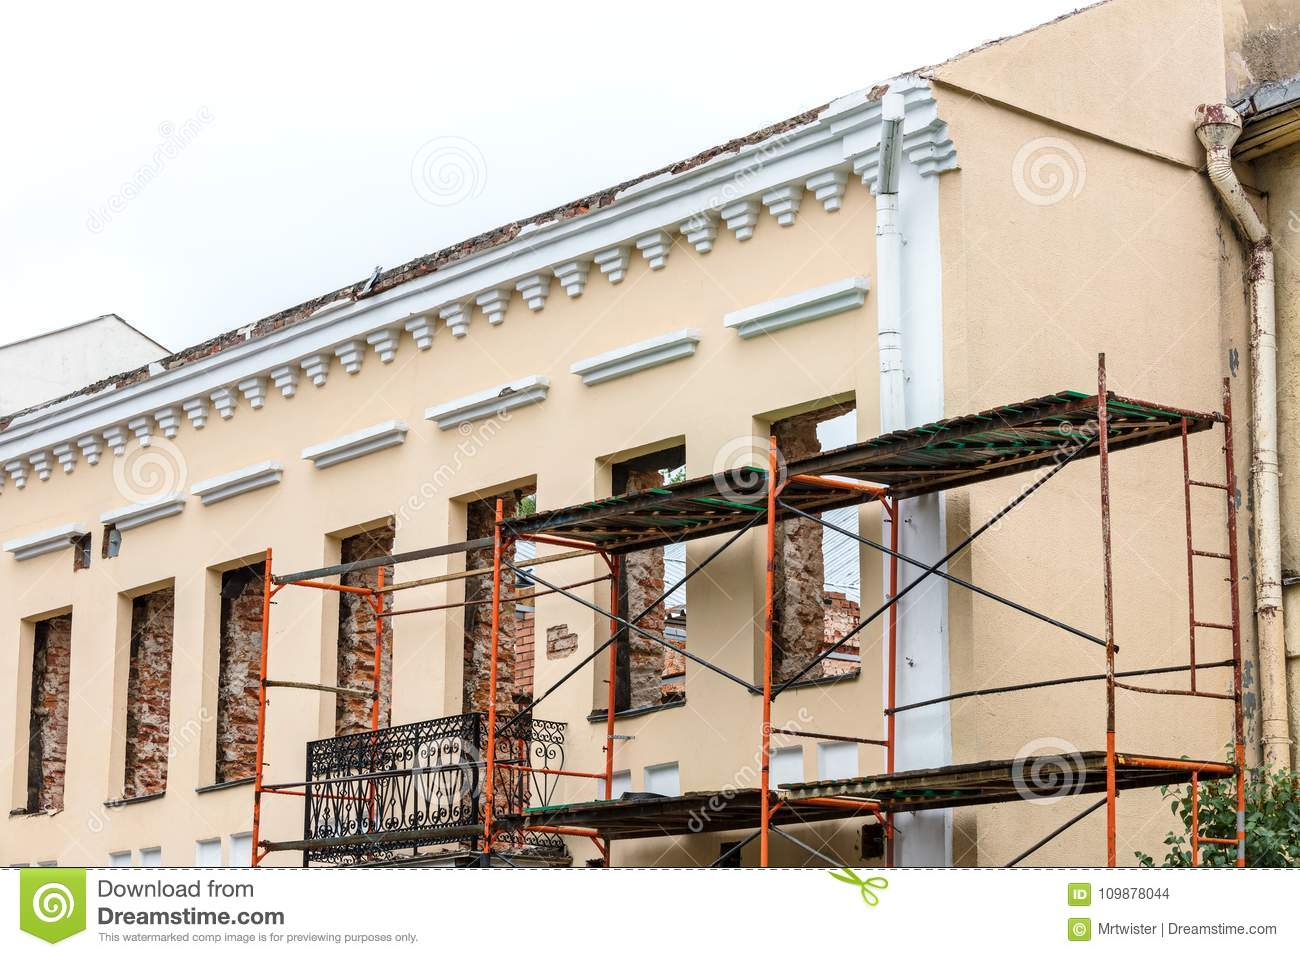 renovation of old residential building with scaffolding near facade wall